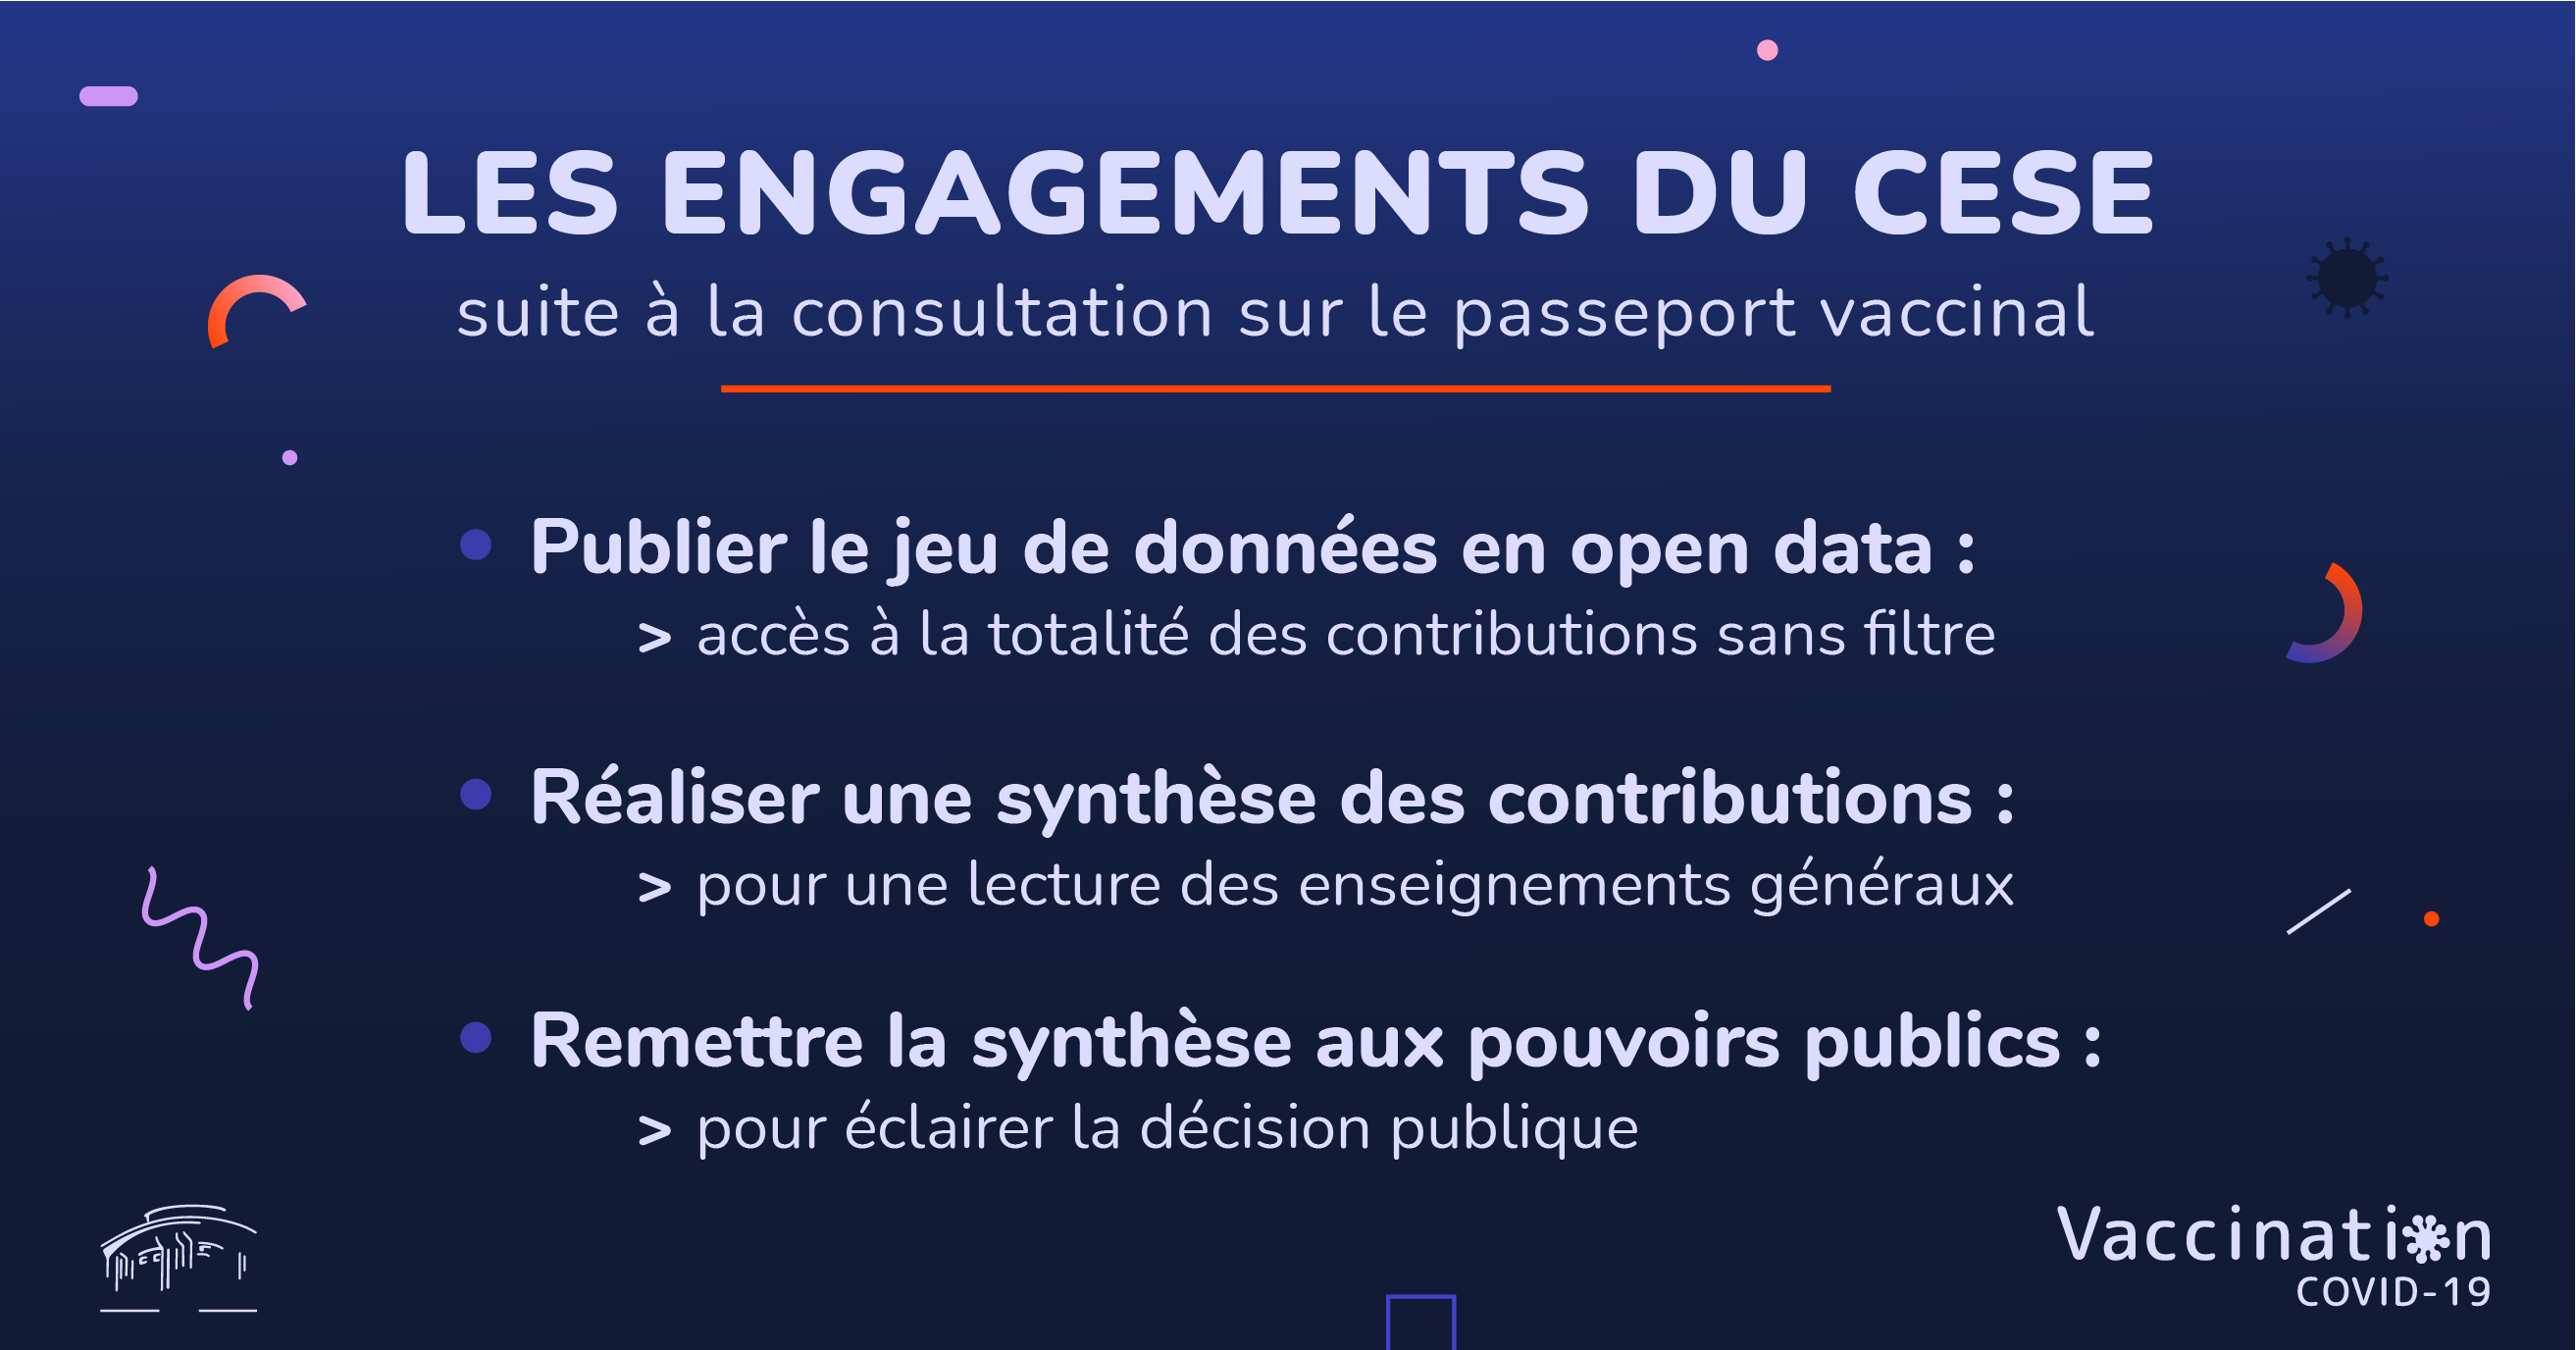 engagements CESE